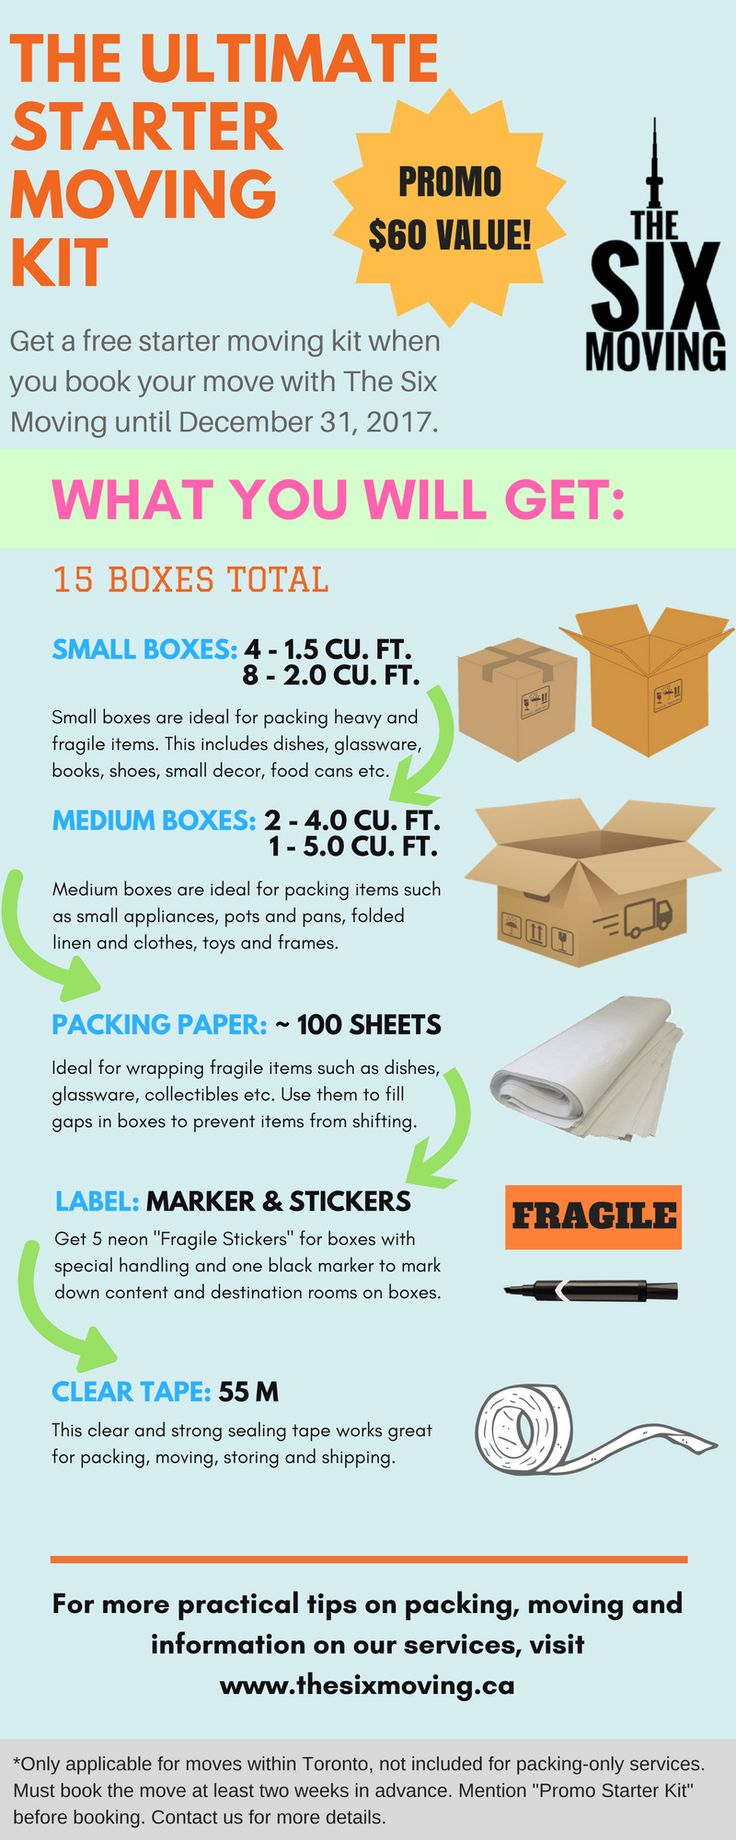 Who doesn't like freebies! Well, here is an essential starter kit for your upcoming move and pack. Free when you book with The Six Moving. $60 value. Here's what you get: